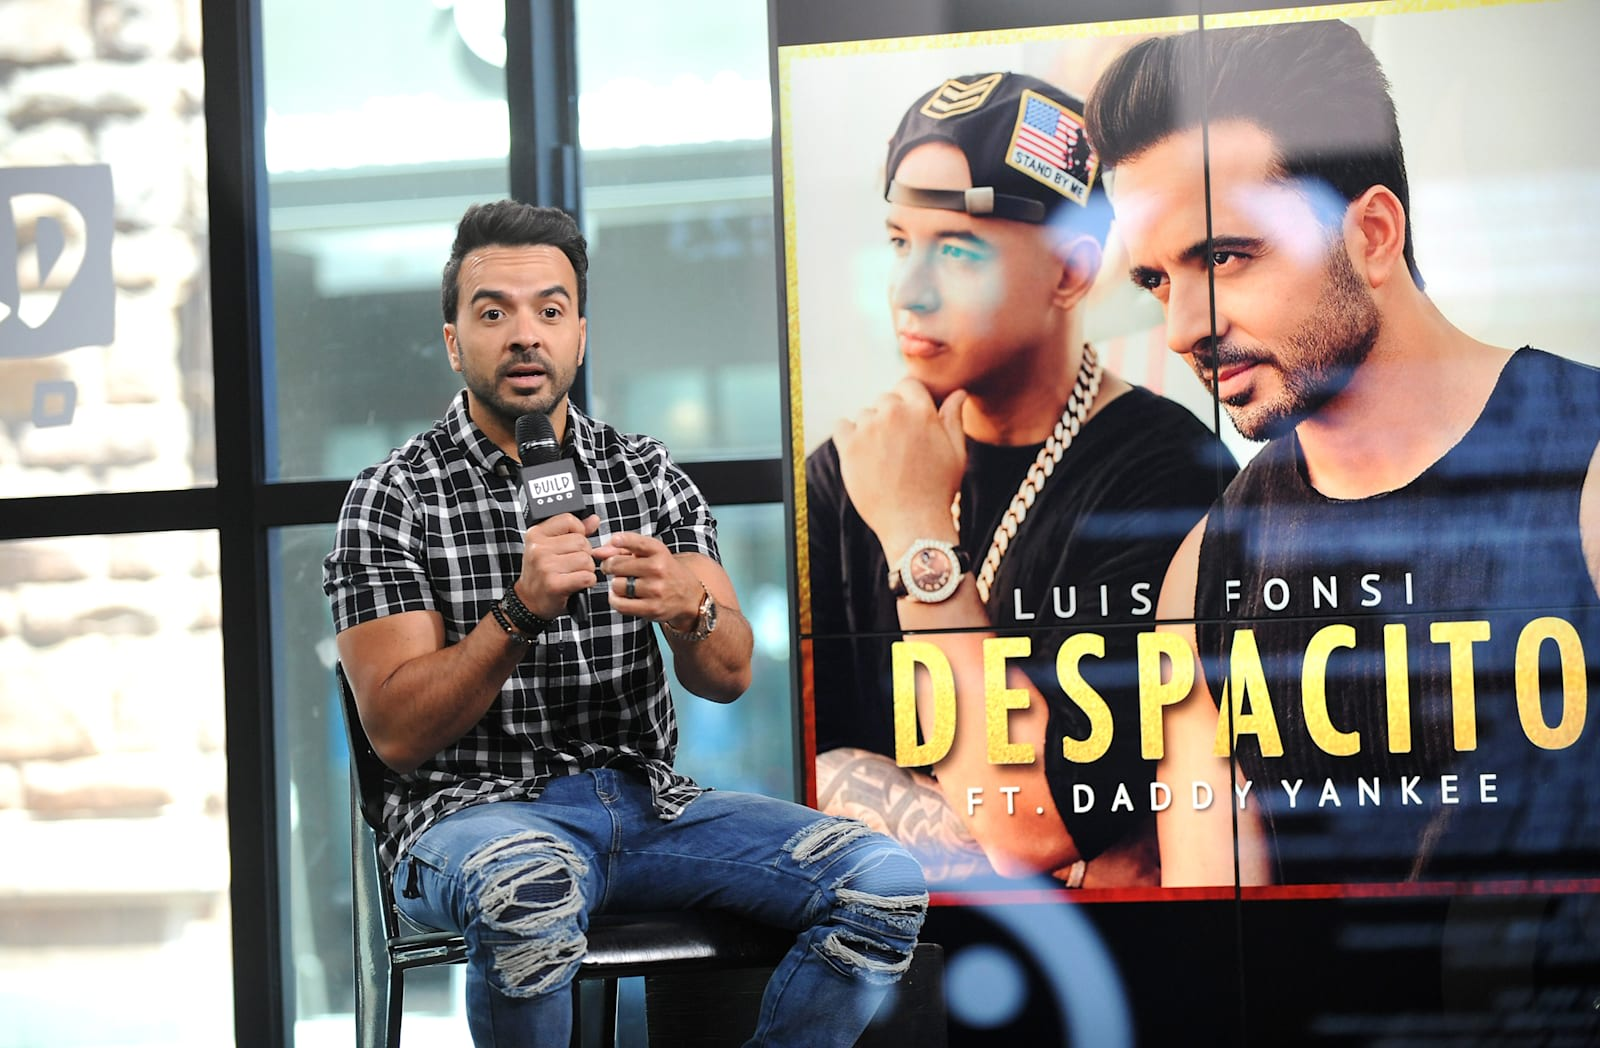 Luis fonsis despacito is the most streamed song of all time desiree navarro via getty images stopboris Choice Image